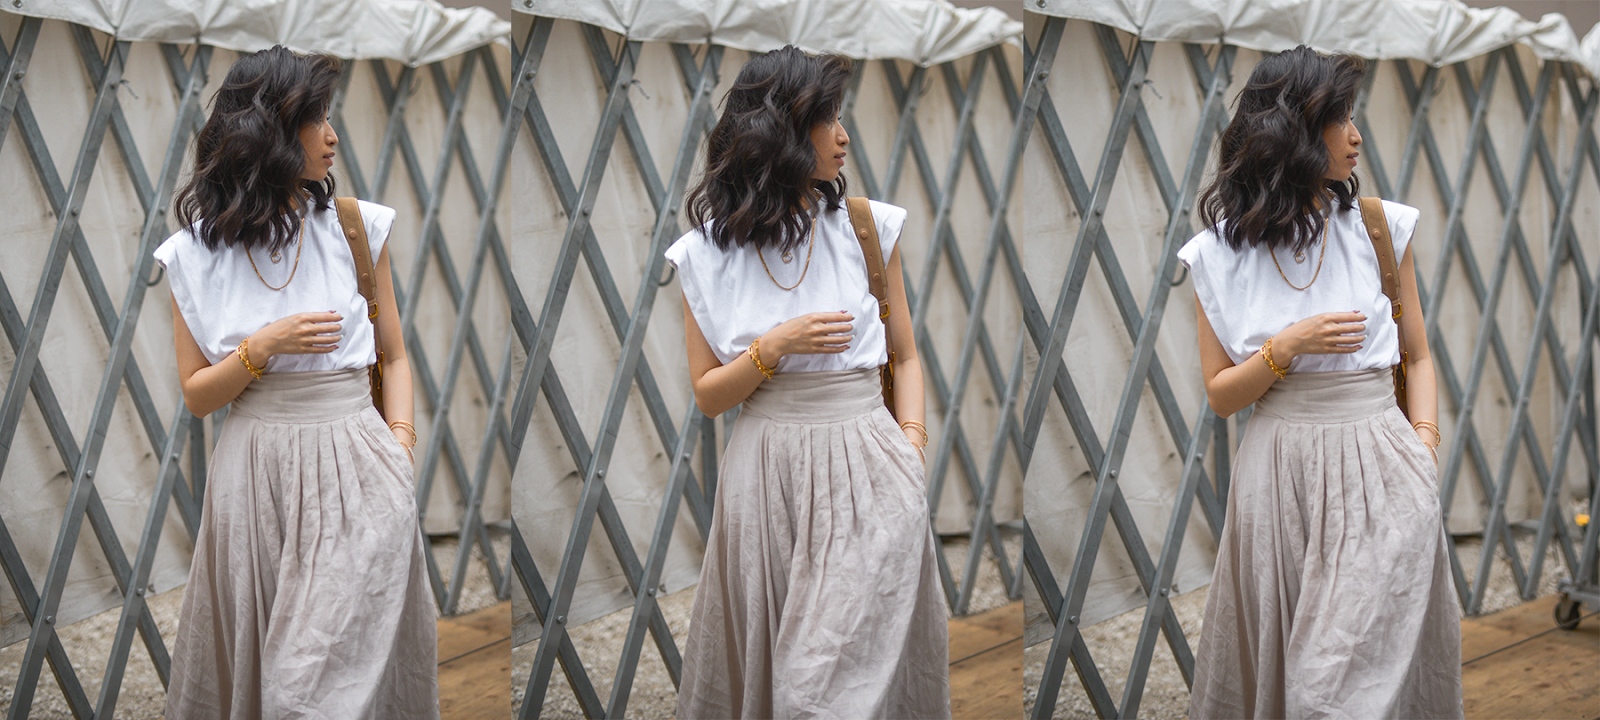 Summer outfit ideas, girl wearing shoulder padded sleeve tshirt and linen skirt, linen skirt outfit for summer, linen skirt style, fashion blogger from NYC and Tokyo / FOREVERVANNY